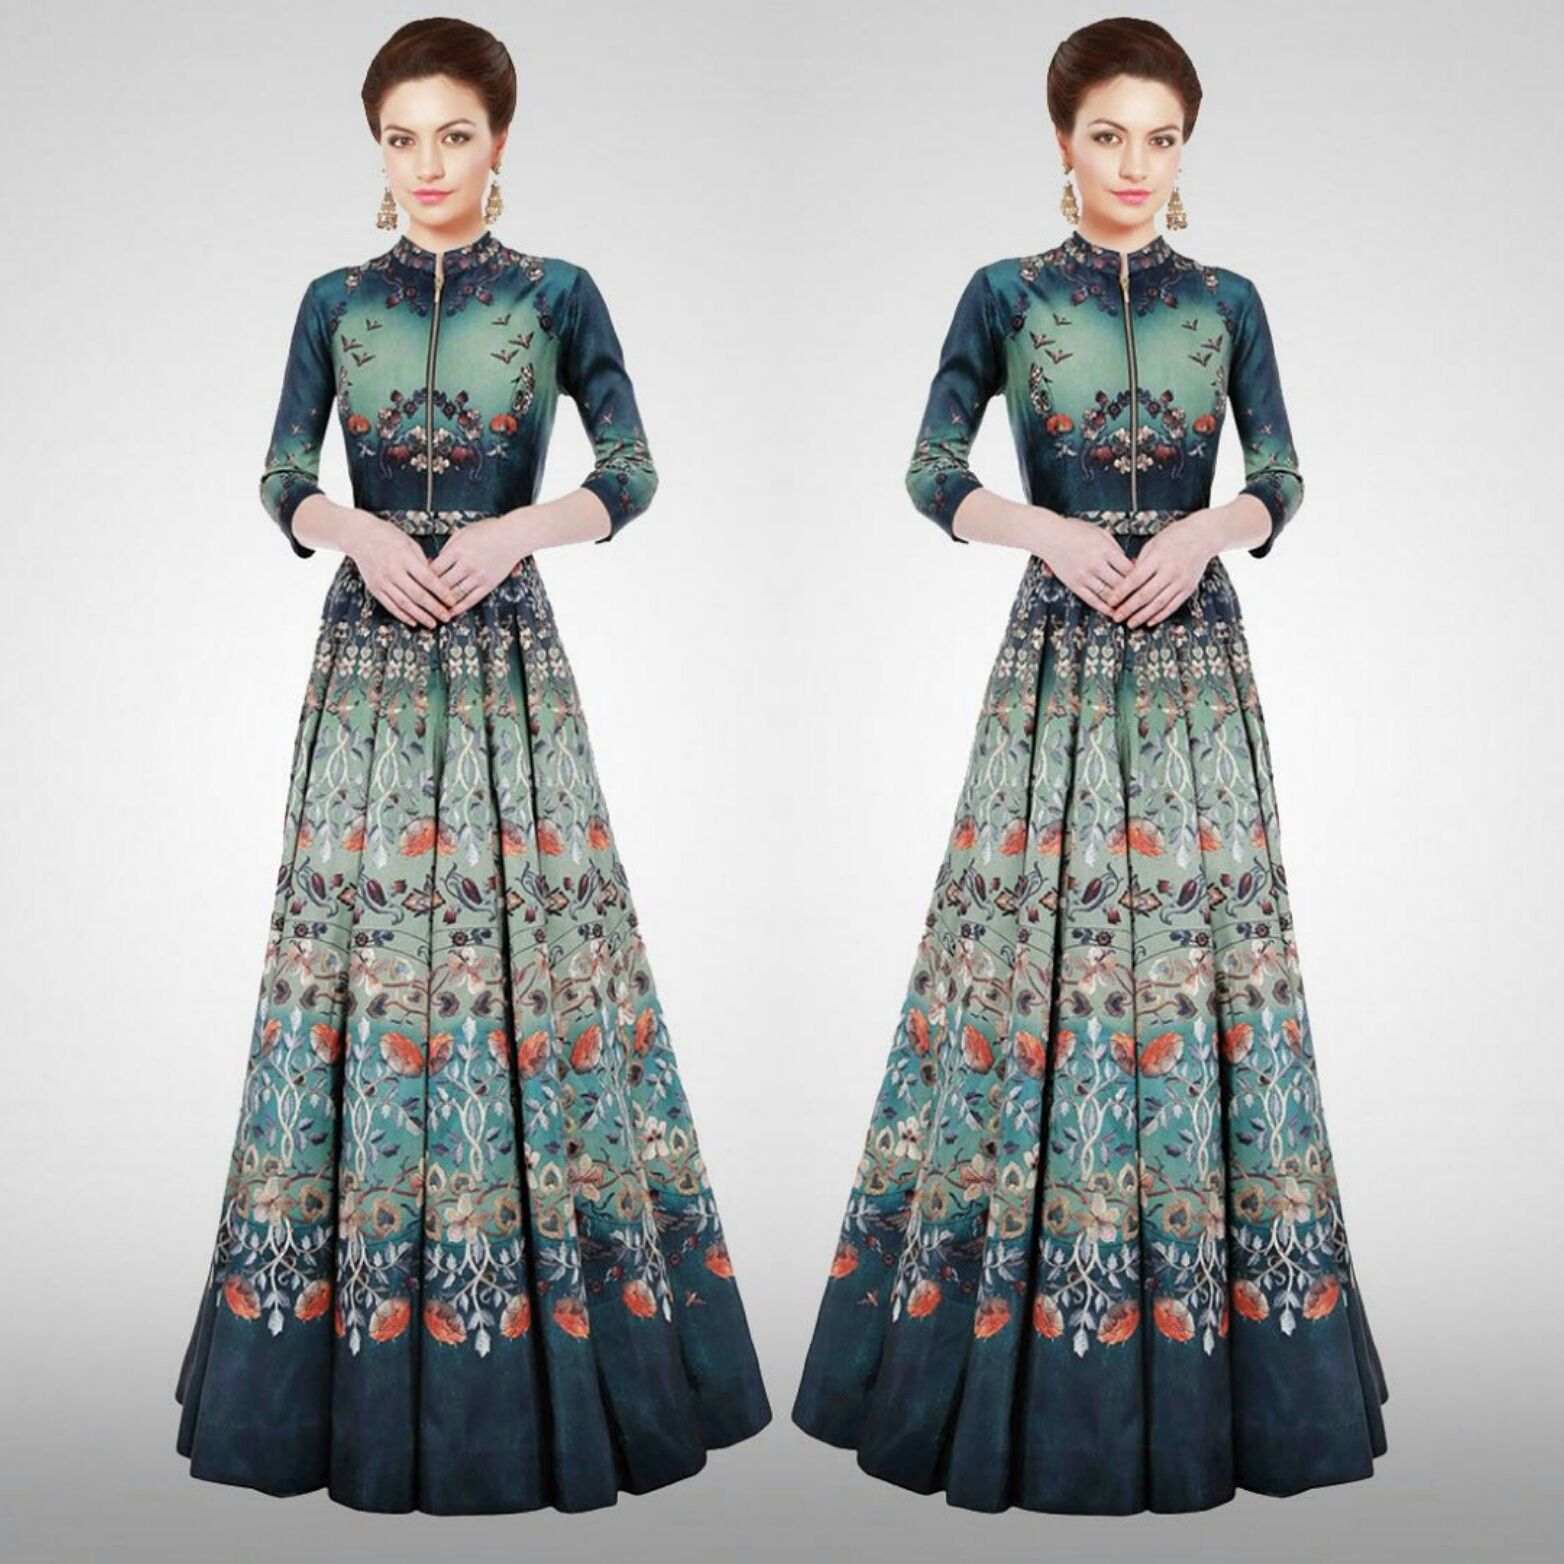 Twill Silk Semi Stitched Printed Gown  Product Info : STYLE: GOWN  SIZE: Free (Semi - Stitched)  FABRIC : Twill Silk  INNER FABRIC : Santoon WORK : Printed COLOUR : Turquoise LENGTH : 57 Inch  BUST SIZE: 40 Inch  WAIST SIZE : 42 Inch HIP SIZE : 52 Inch  FLARE : 3.50 Mtr Neck Type : Collar Neck SLEEVE TYPE: Half Sleeve /16 Inch WEIGHT : 1Kg OCCASION: Party, Festival, Casual, Reception  WASH CARE: Dry Clean Only (BOTTOM IS NOT AVAILABLE)  Price : 2200 INR Only ! #Boo..